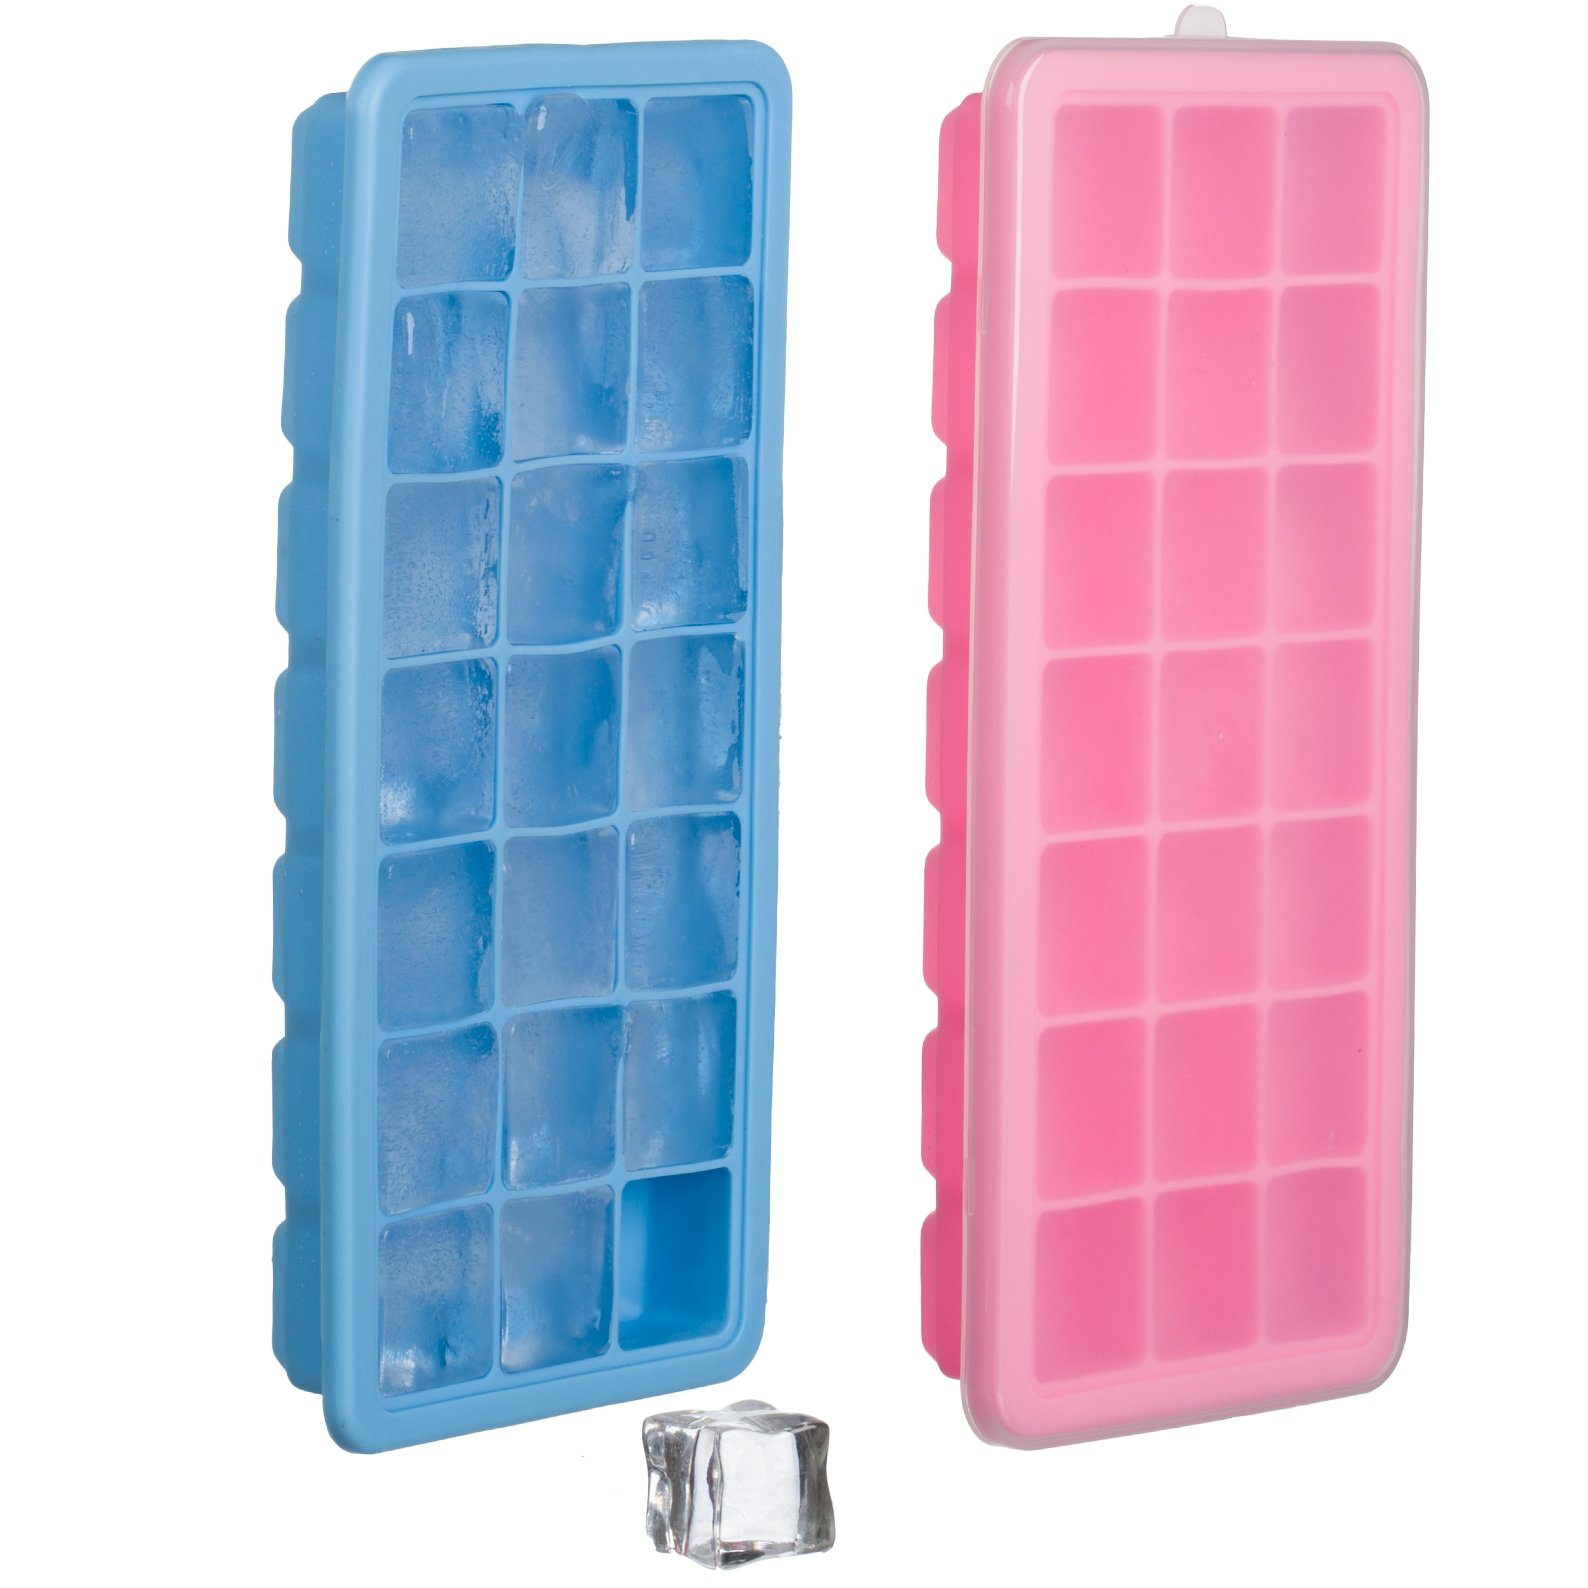 Set Of 2 Silicone Ice Cube Trays With Lid Cover Soft Bottom For